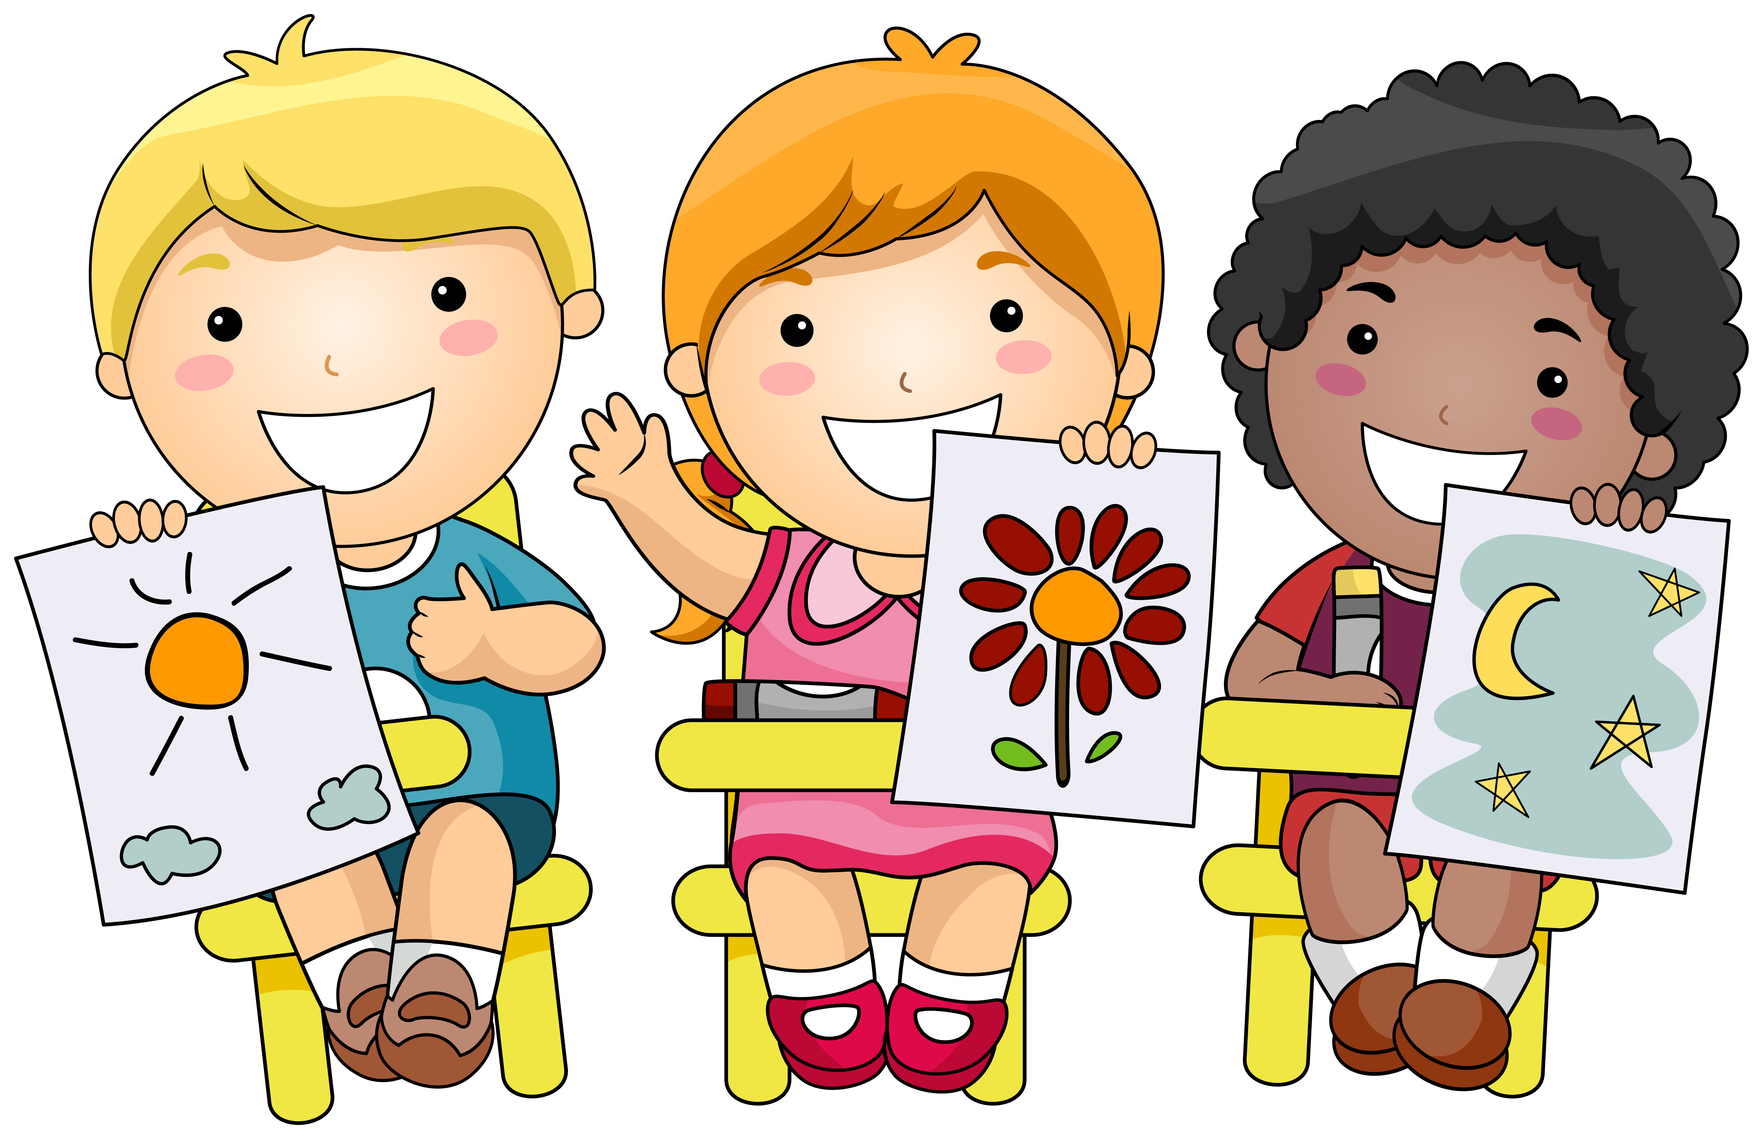 Kids Arts And Crafts Clip Art Religious Fathers Day Clip Art Art And